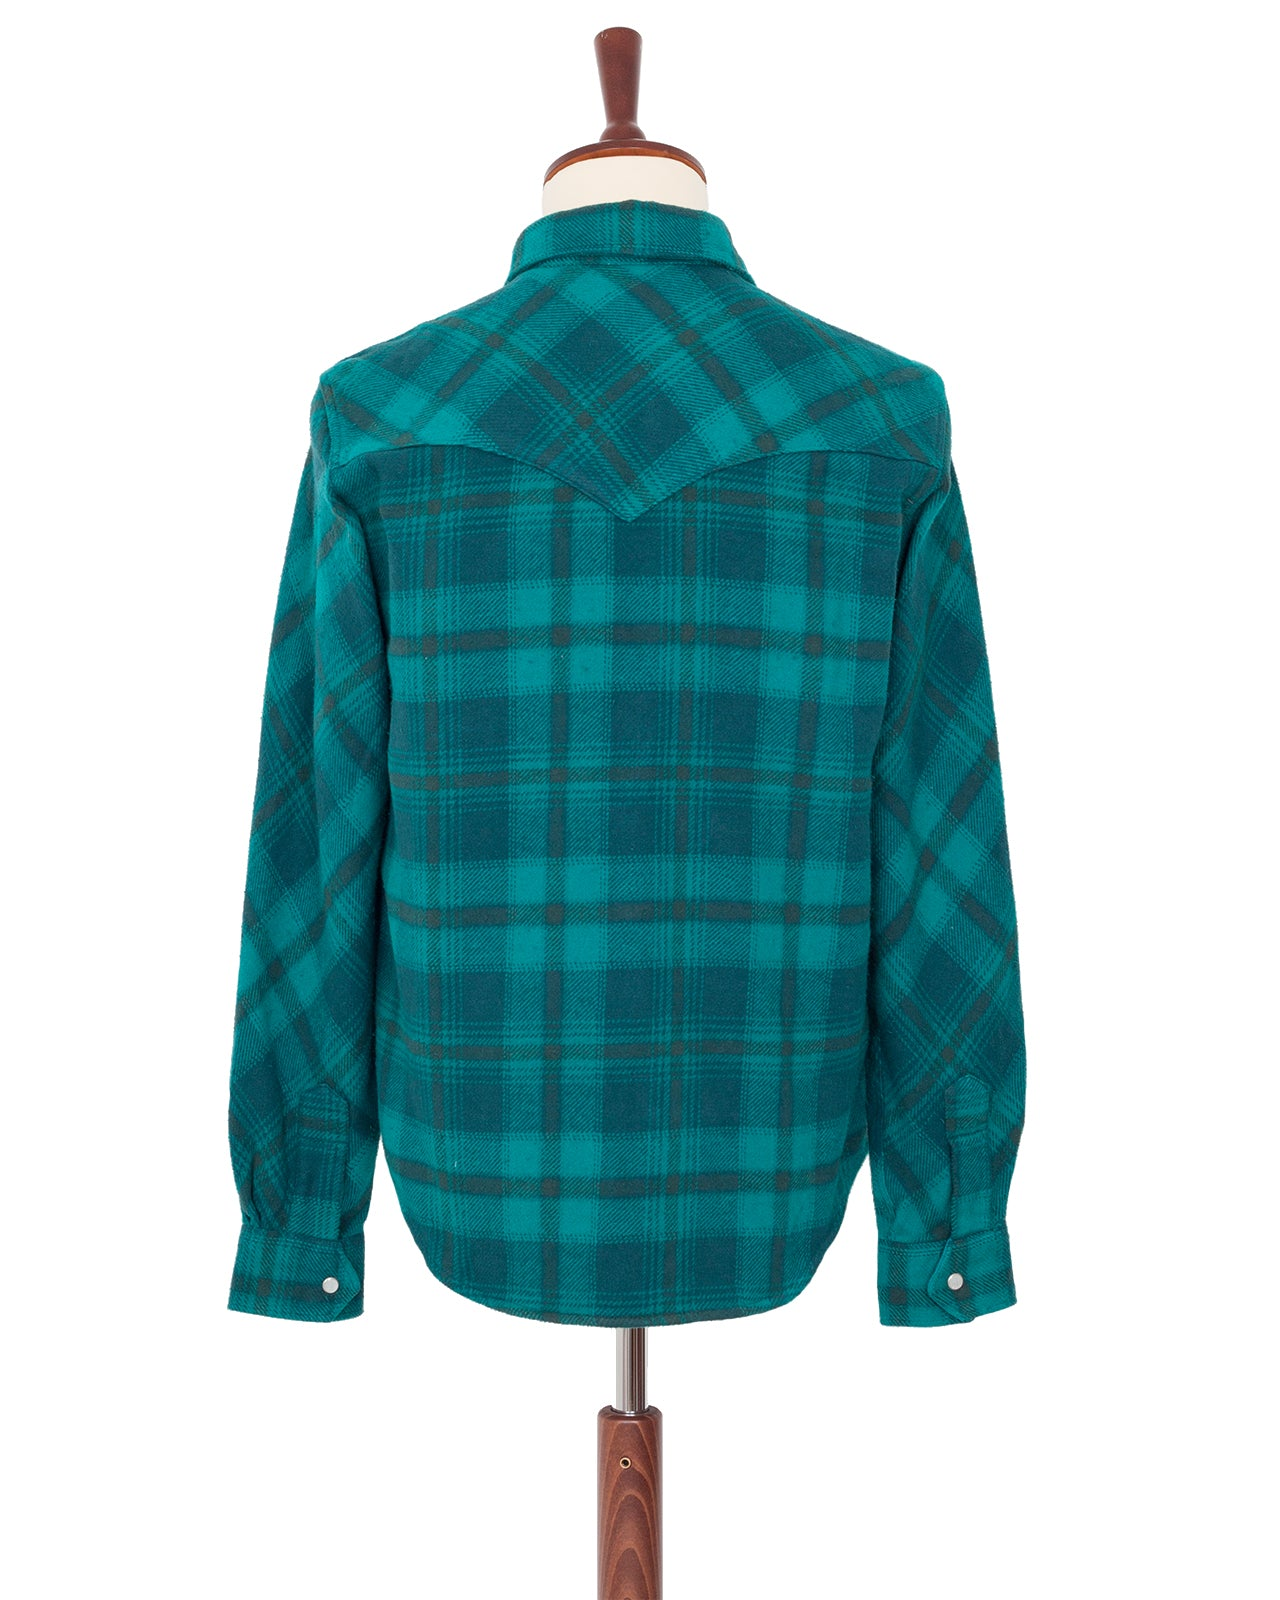 Indigofera x Miriam Parkman, Cliffs and Moss Shirt, Check Flannel